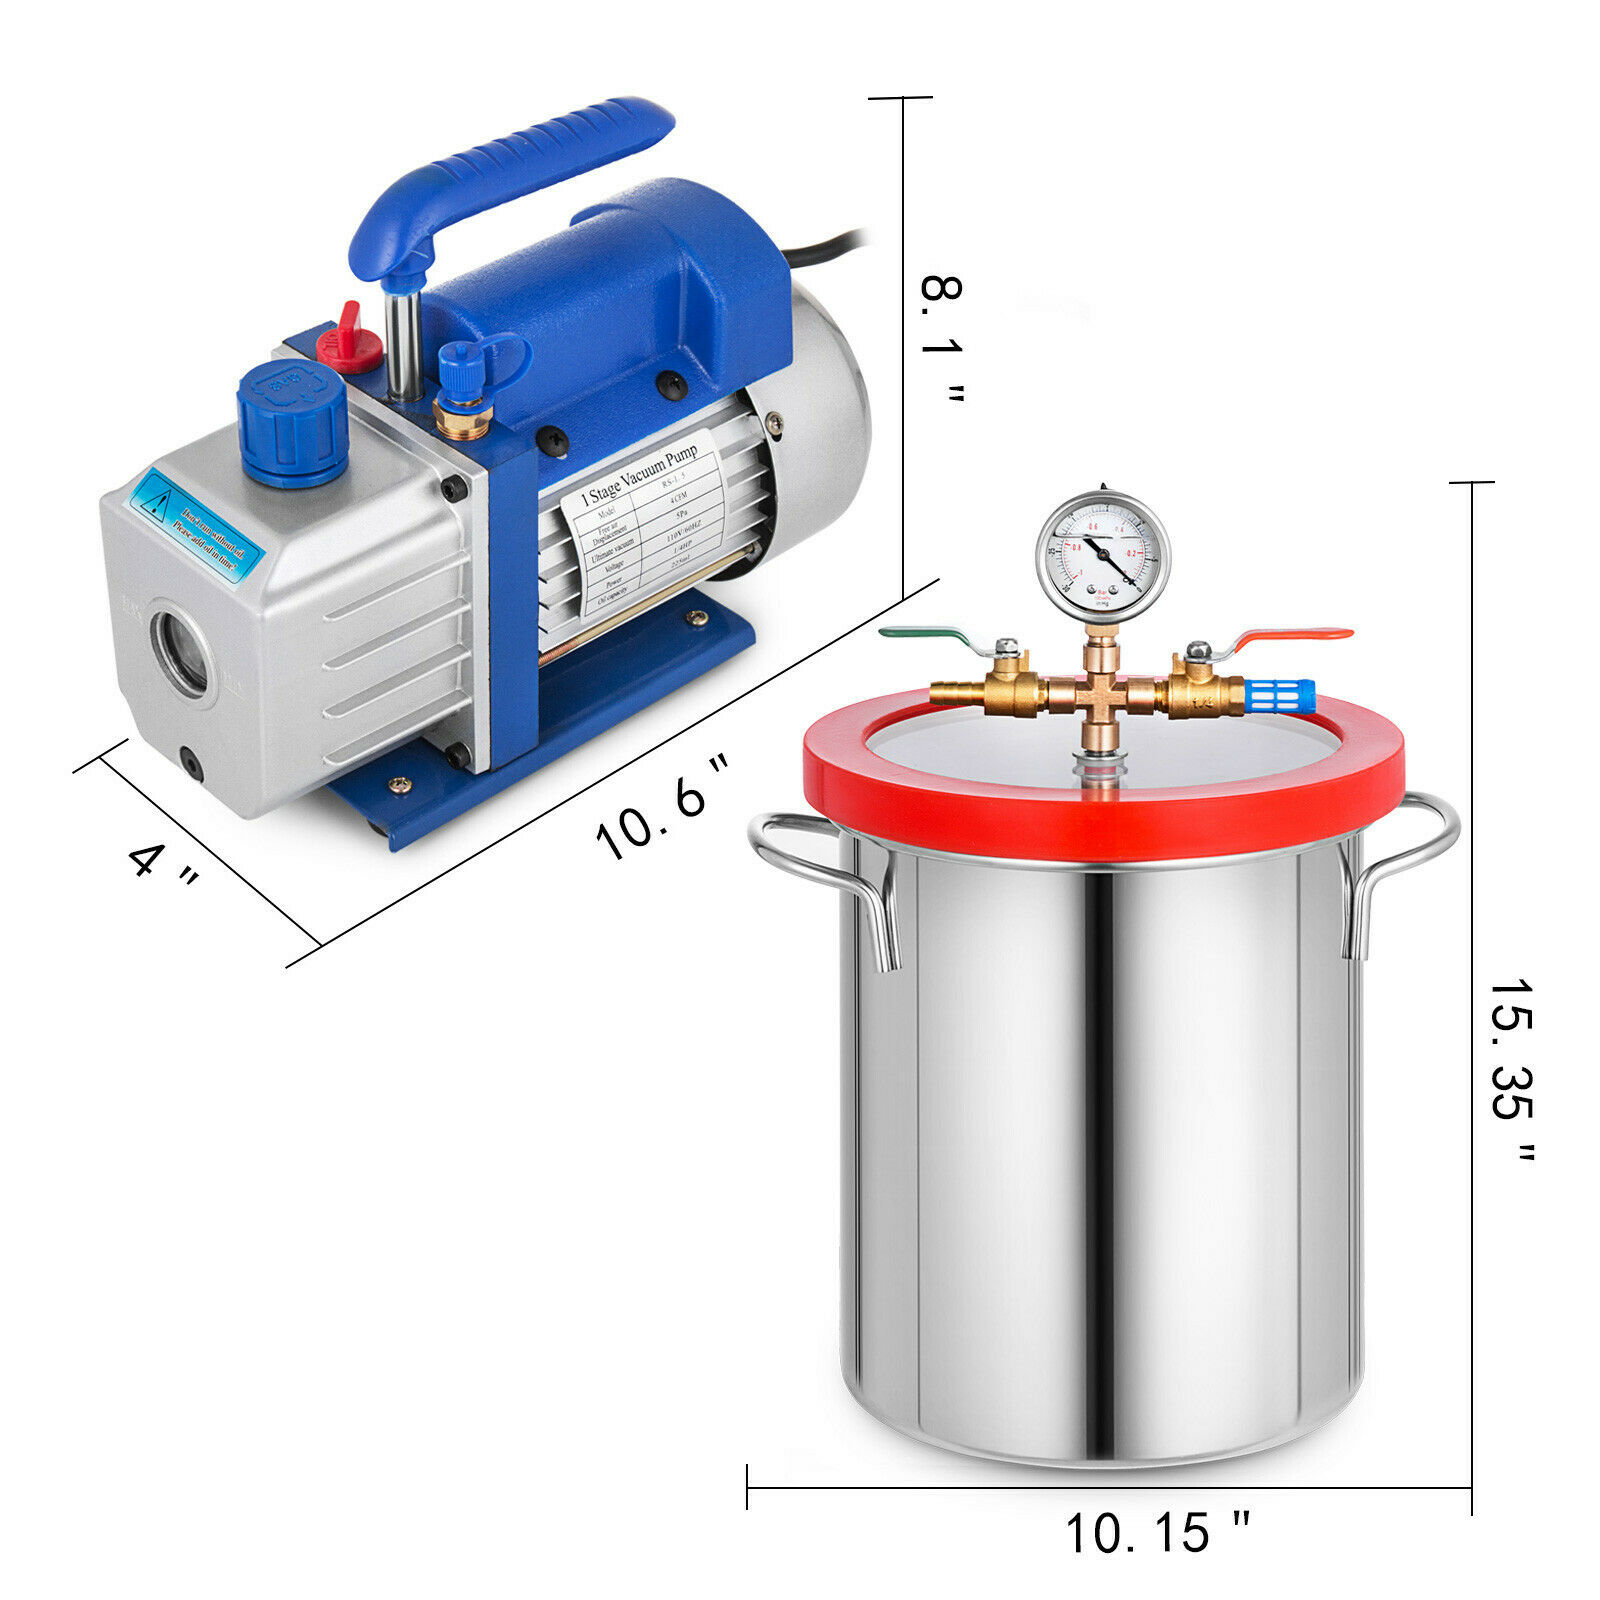 Vacuum Pump 2 Gallon Vacuum Chamber Silicone Expoxy Degassing With 4CFM 1/3HP Single Stage Vacuum Pump